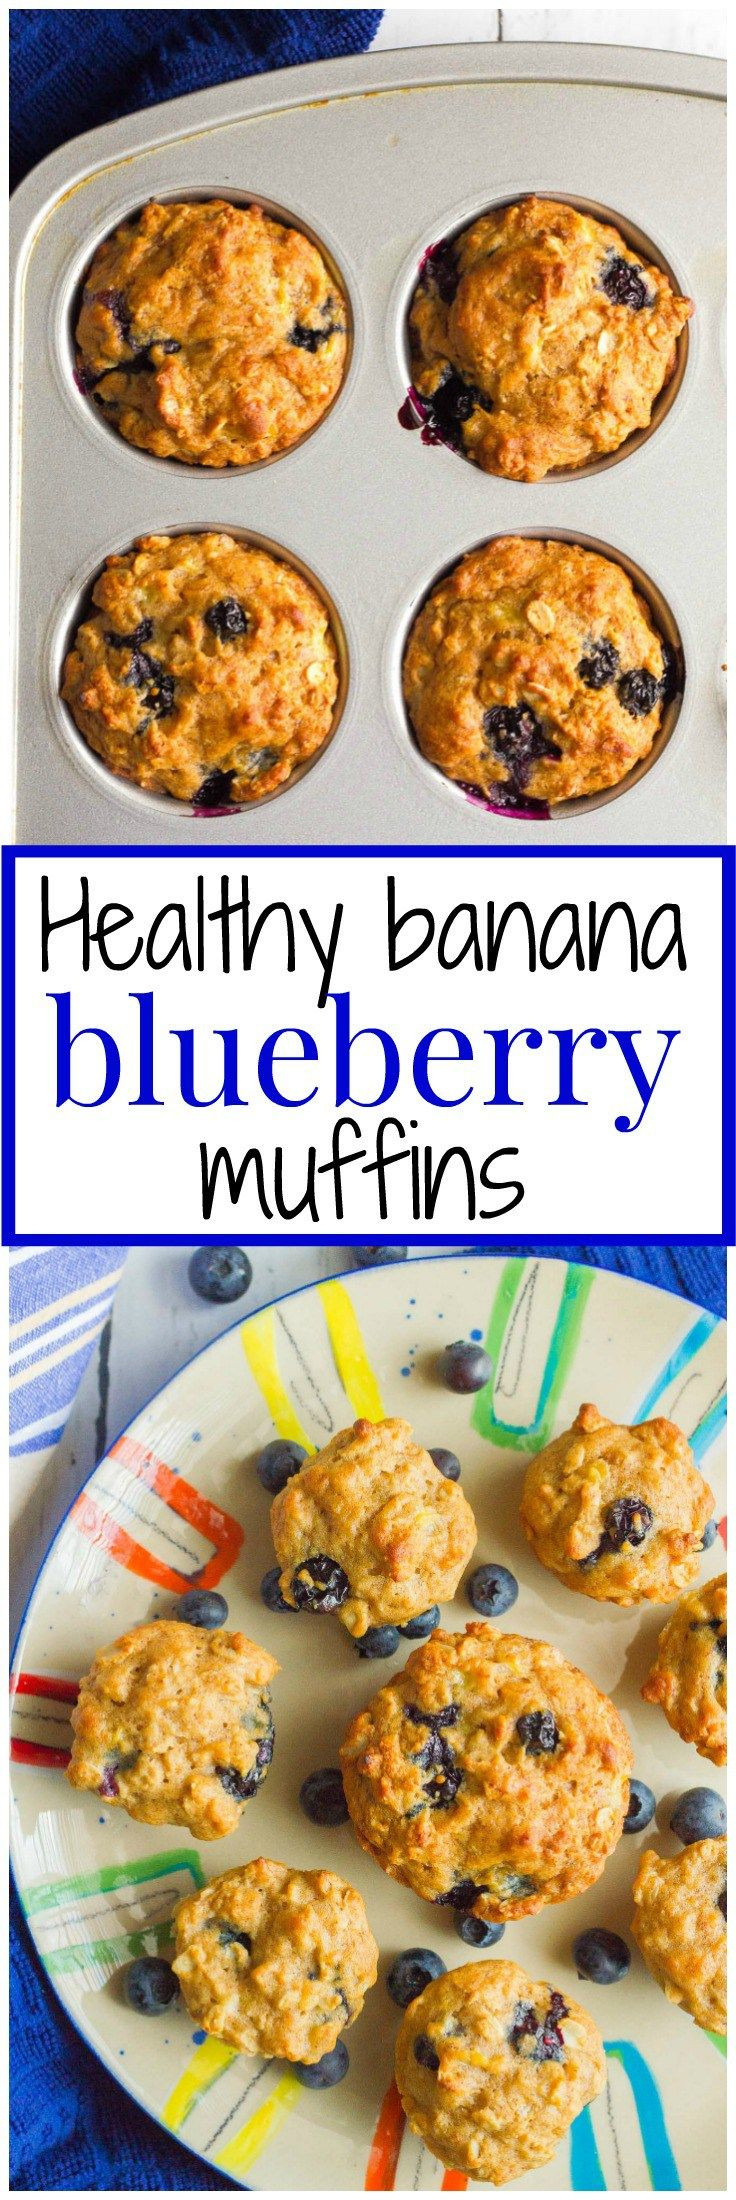 Blueberry Baby Food Recipe  Whole grain naturally sweetened banana blueberry muffins